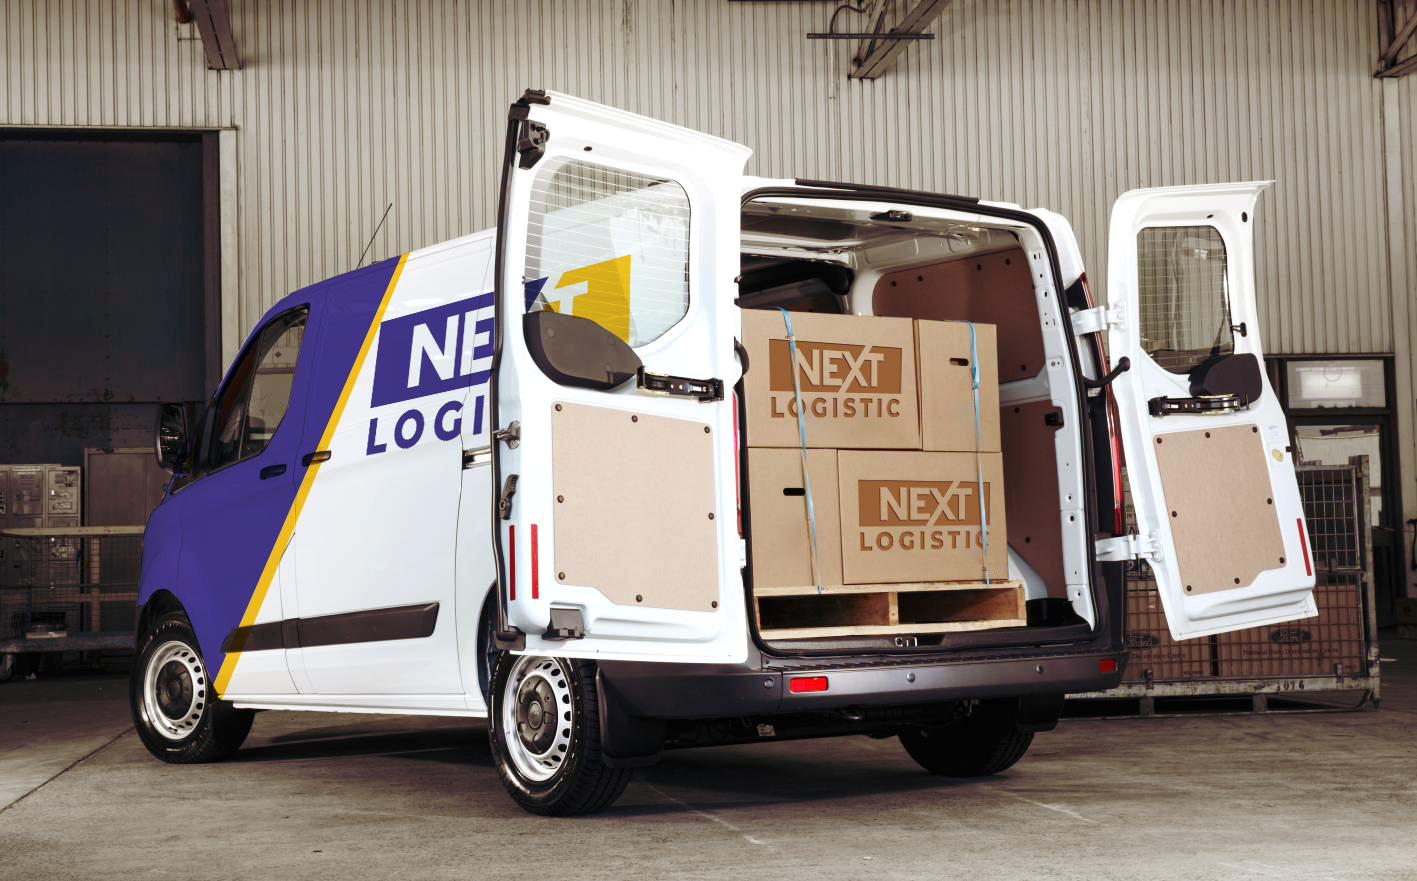 Nextlogistic Van loaded with boxes tied to a pallet